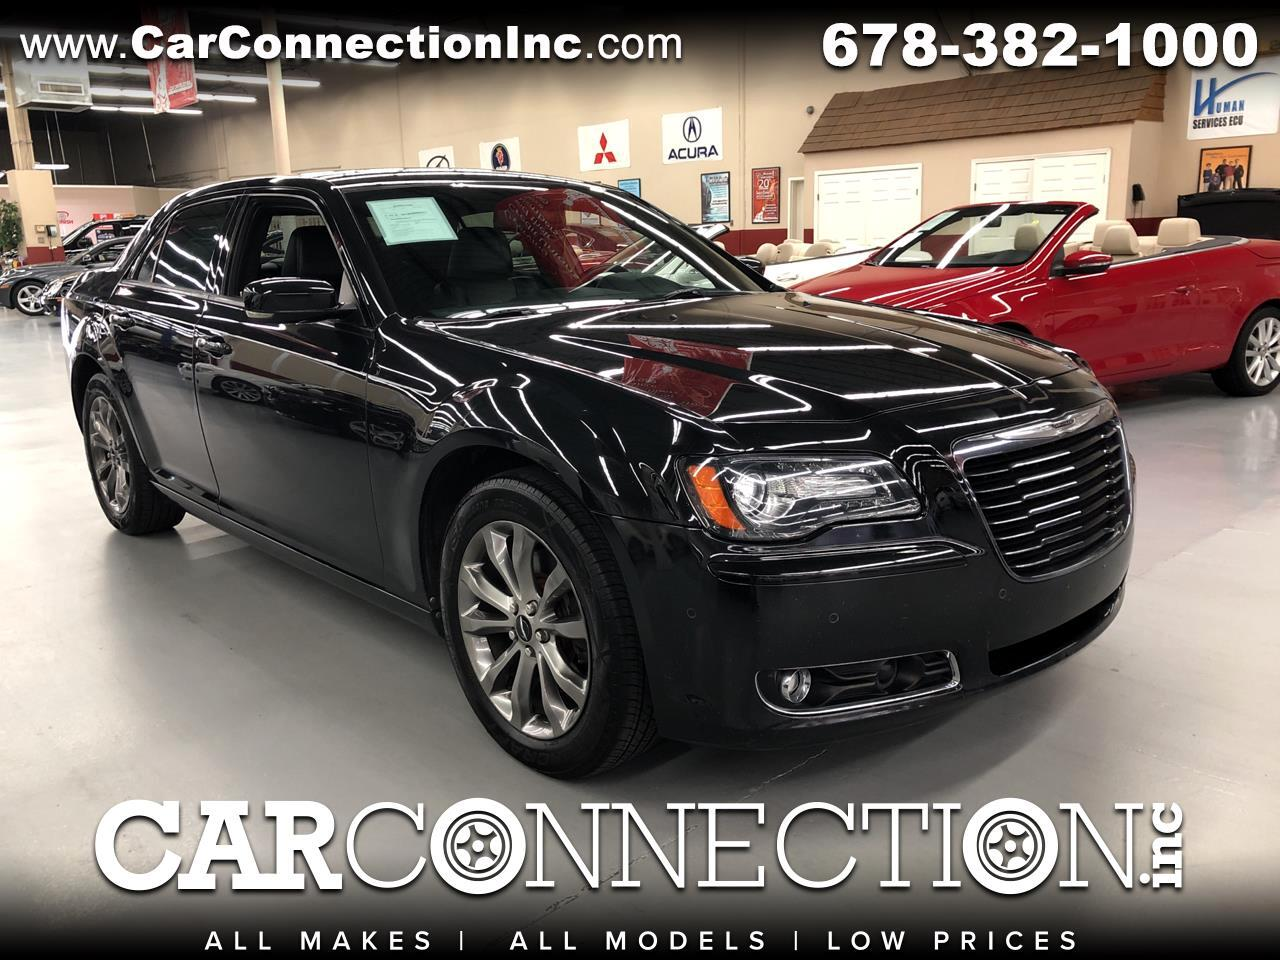 2014 Chrysler 300 300S AWD